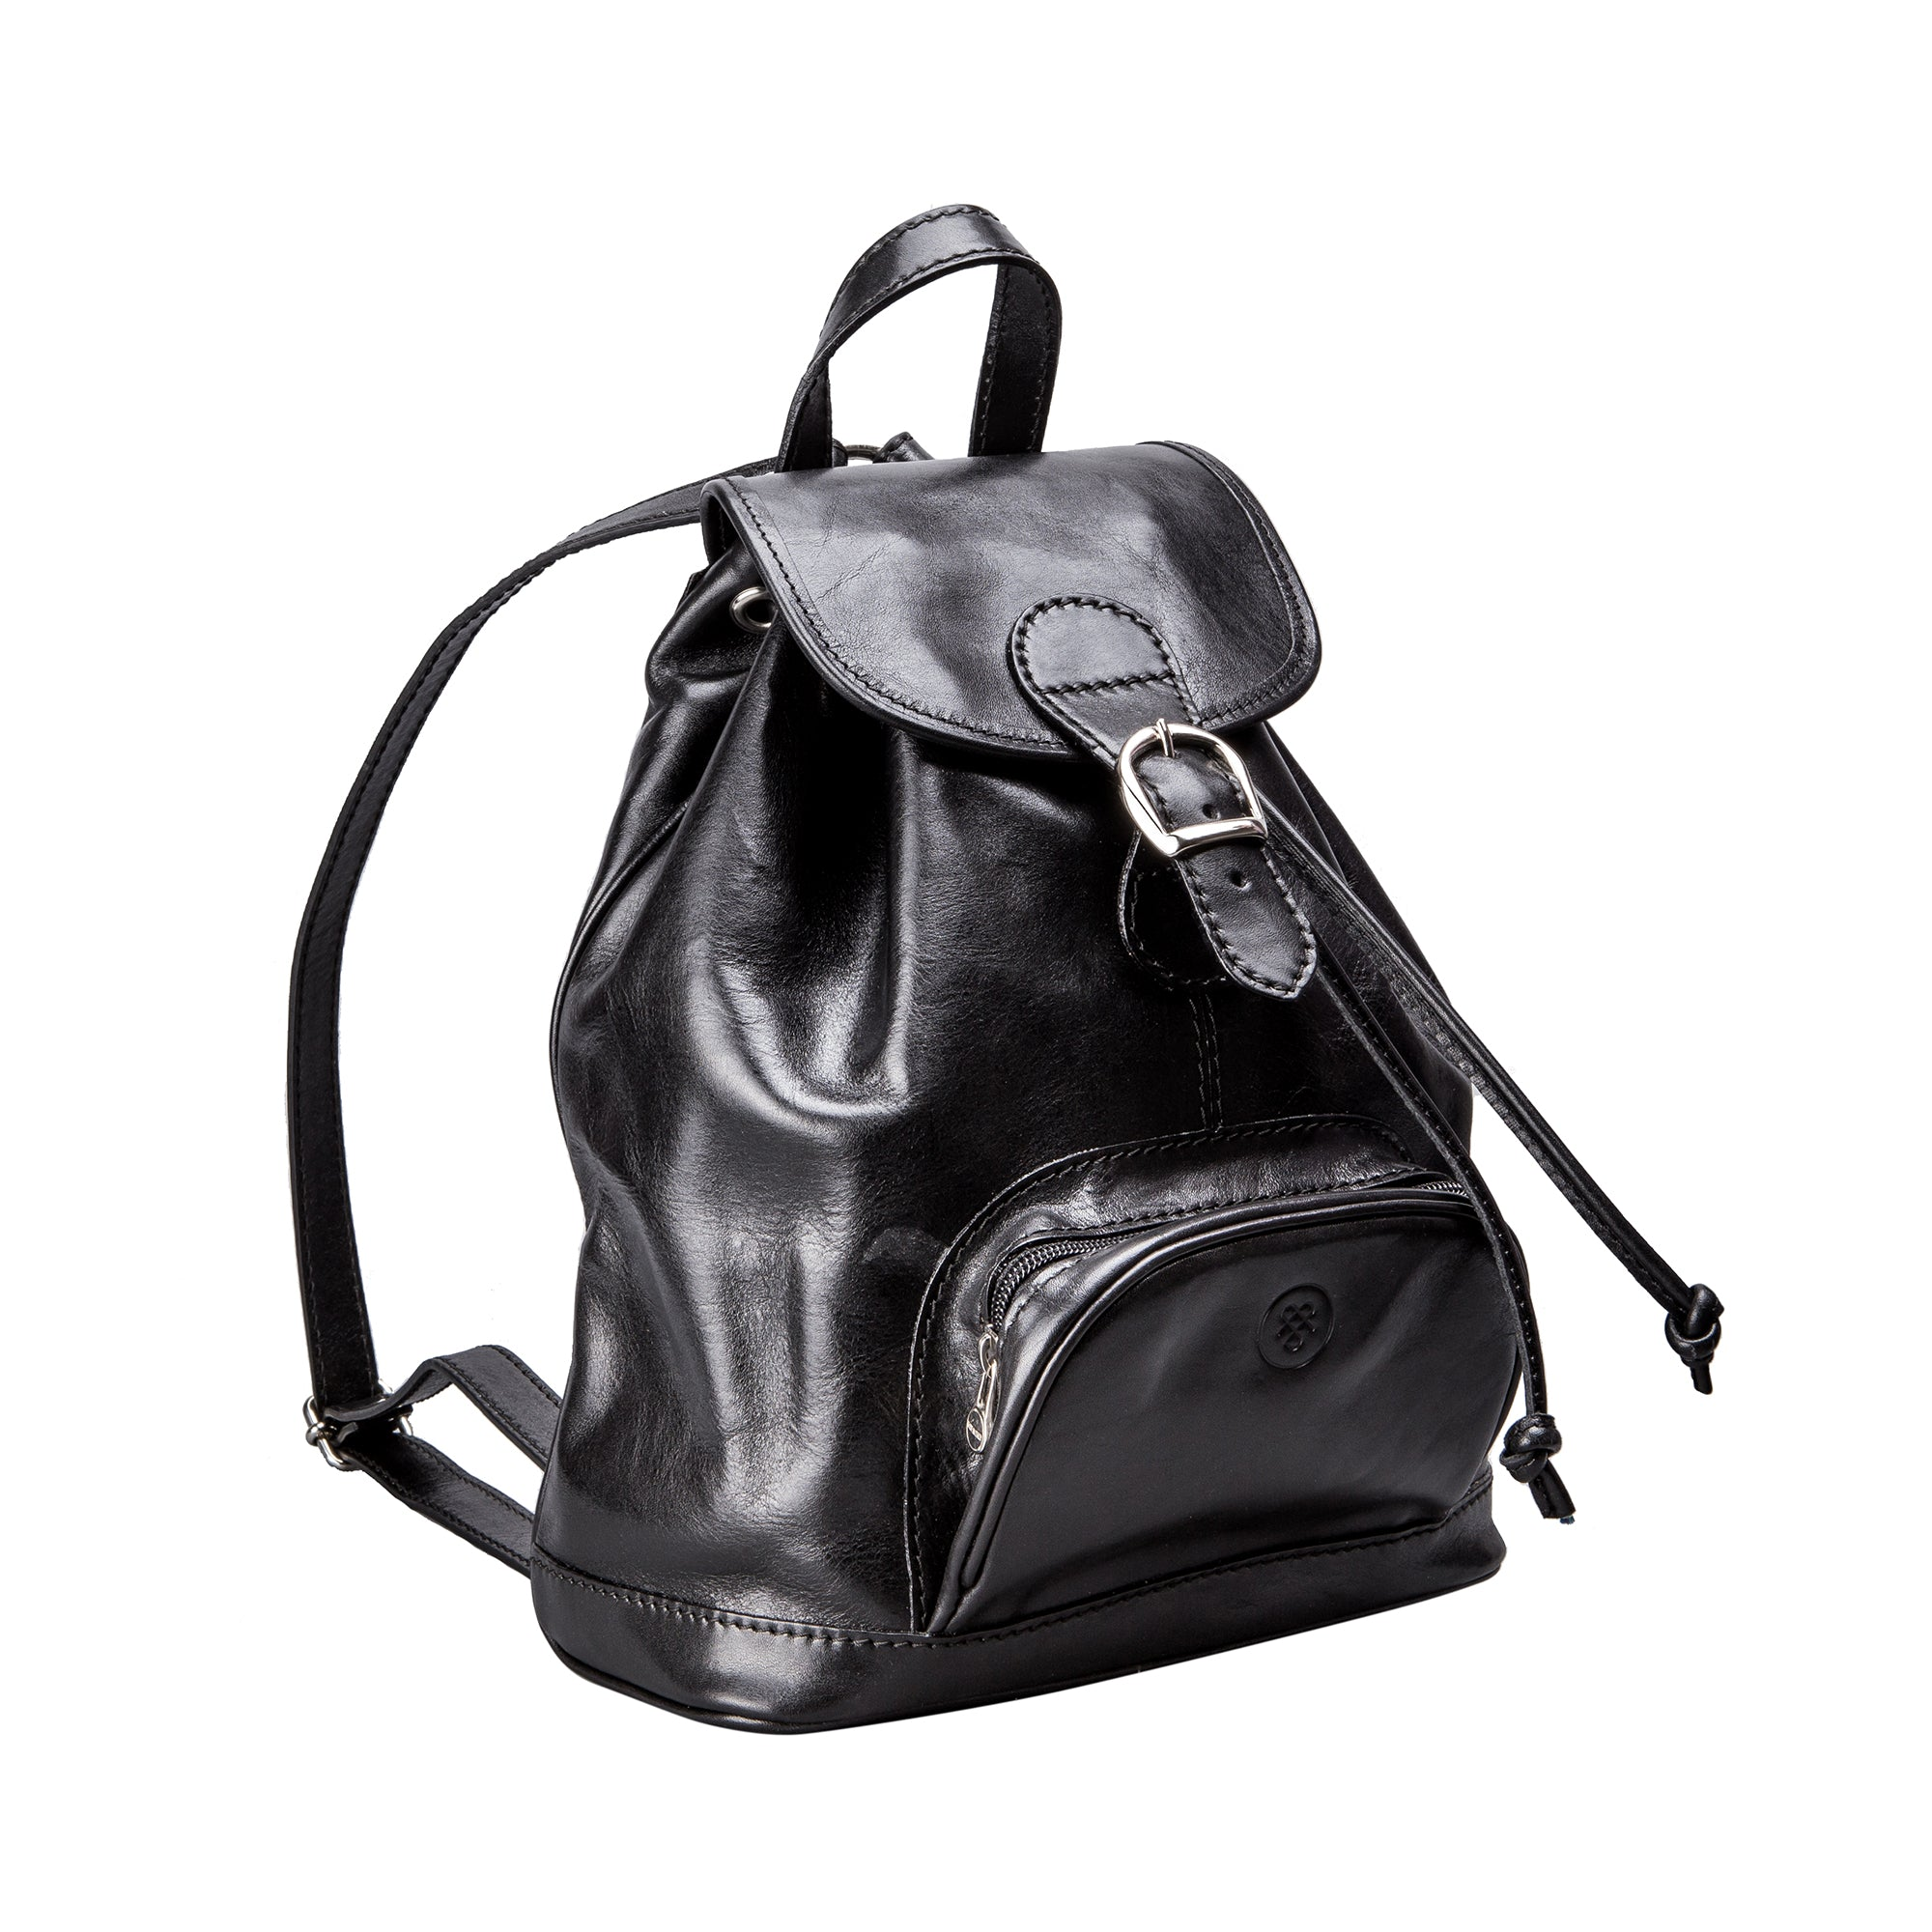 Image 2 of the 'Sparano' Black Veg-Tanned Leather Backpack